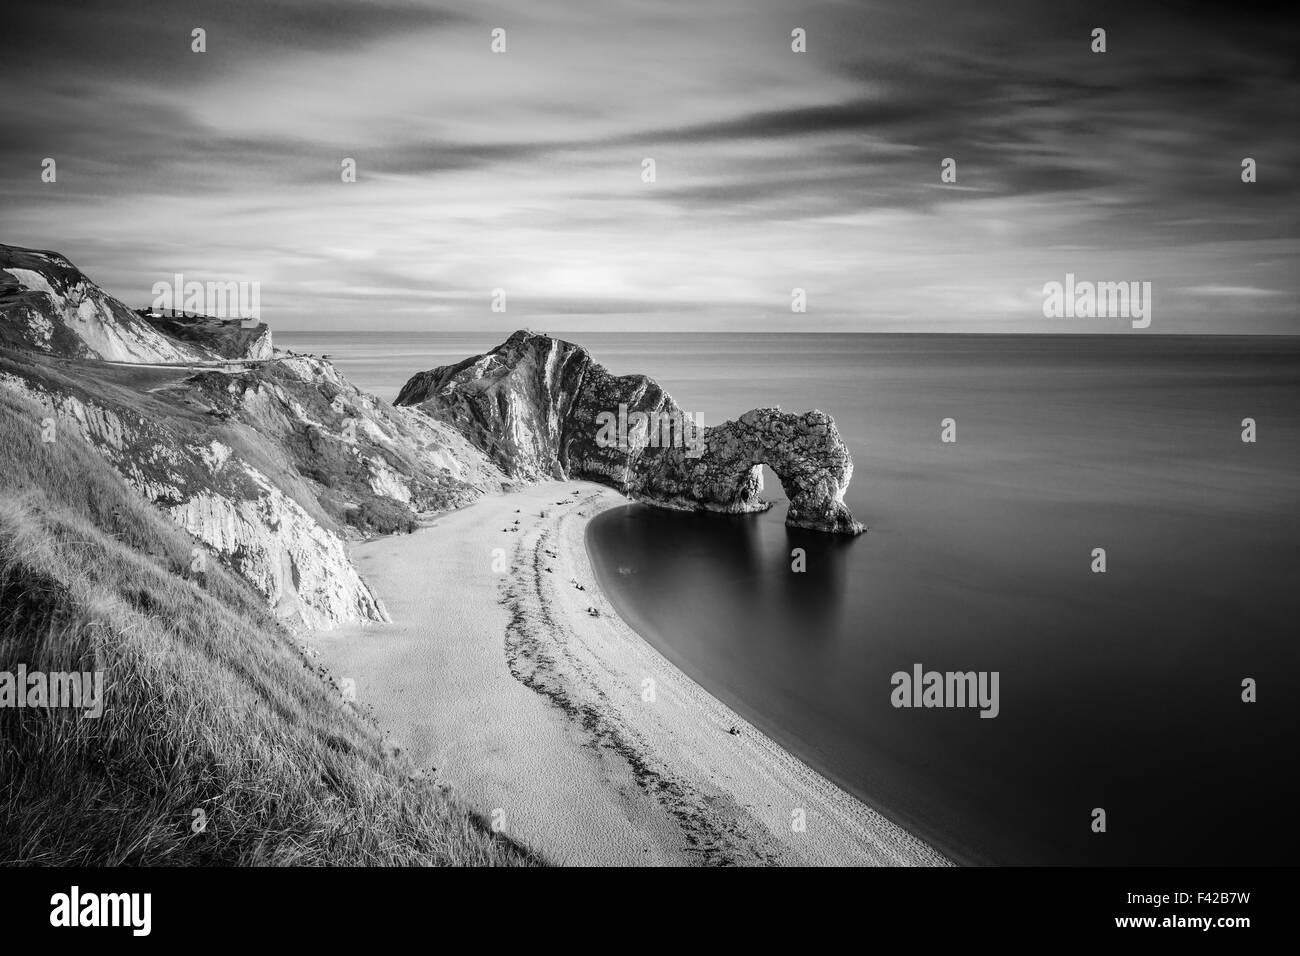 Durdle Door, Jurassic Coast, UNESCO Website, Dorset, England, UK Stockbild